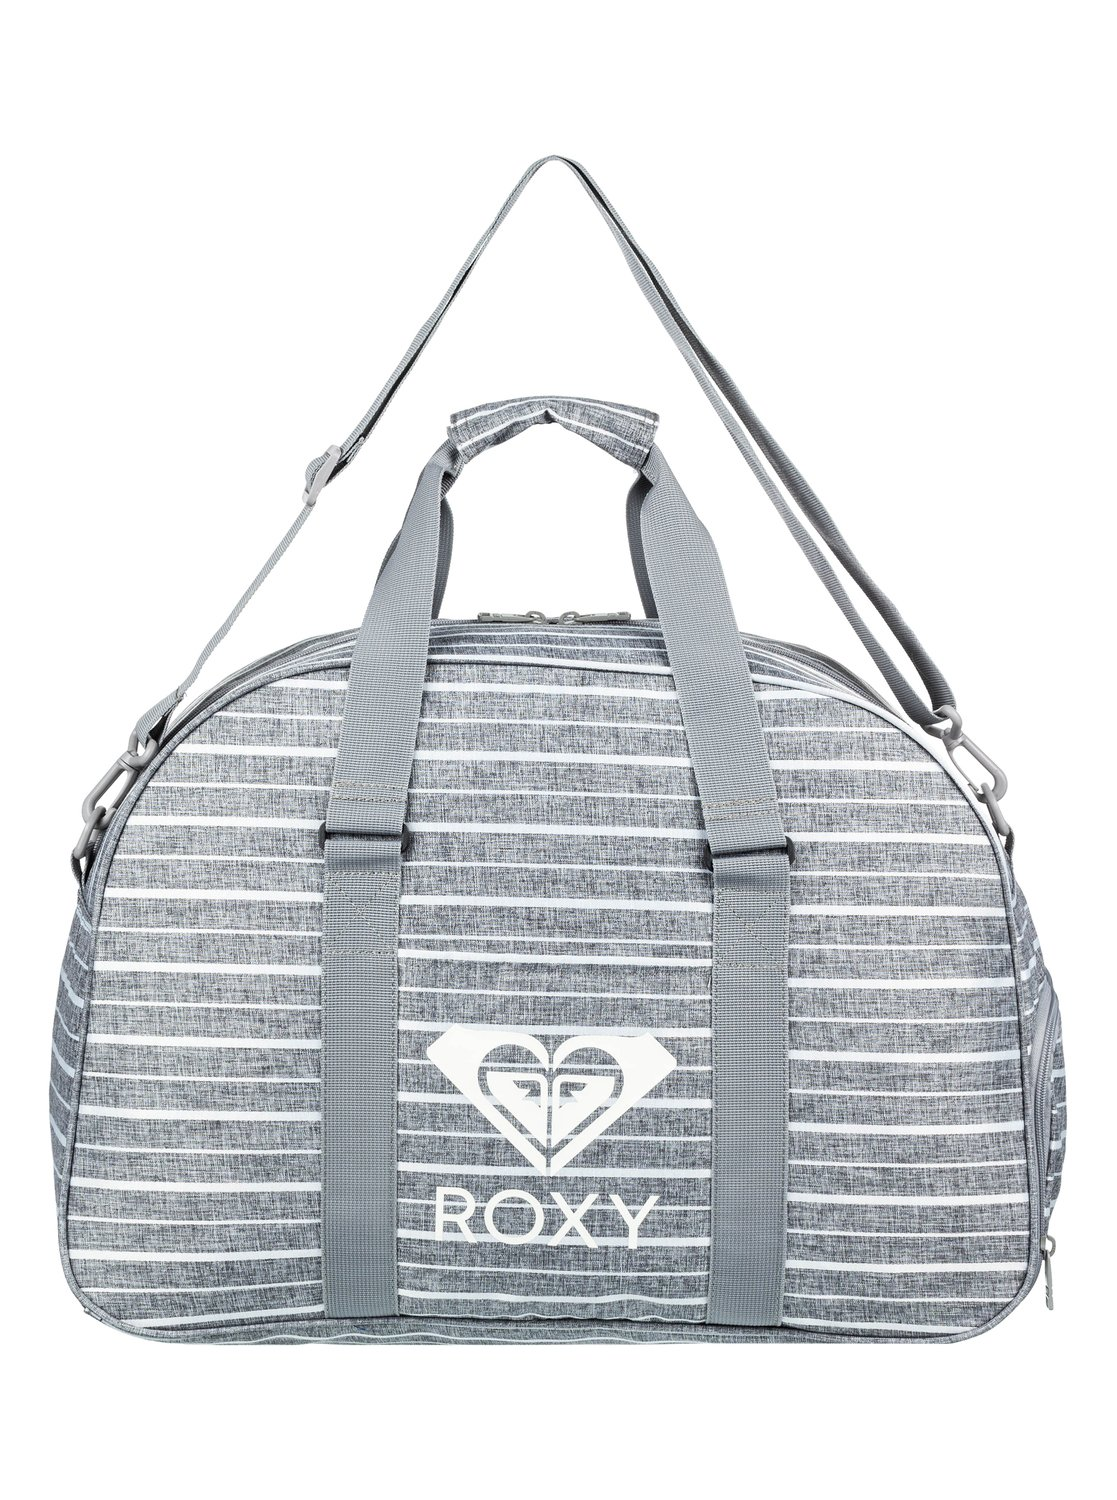 Sac Roxy Happy Moyen De Sport Erjbp03770 35l Feel nFp41xq01